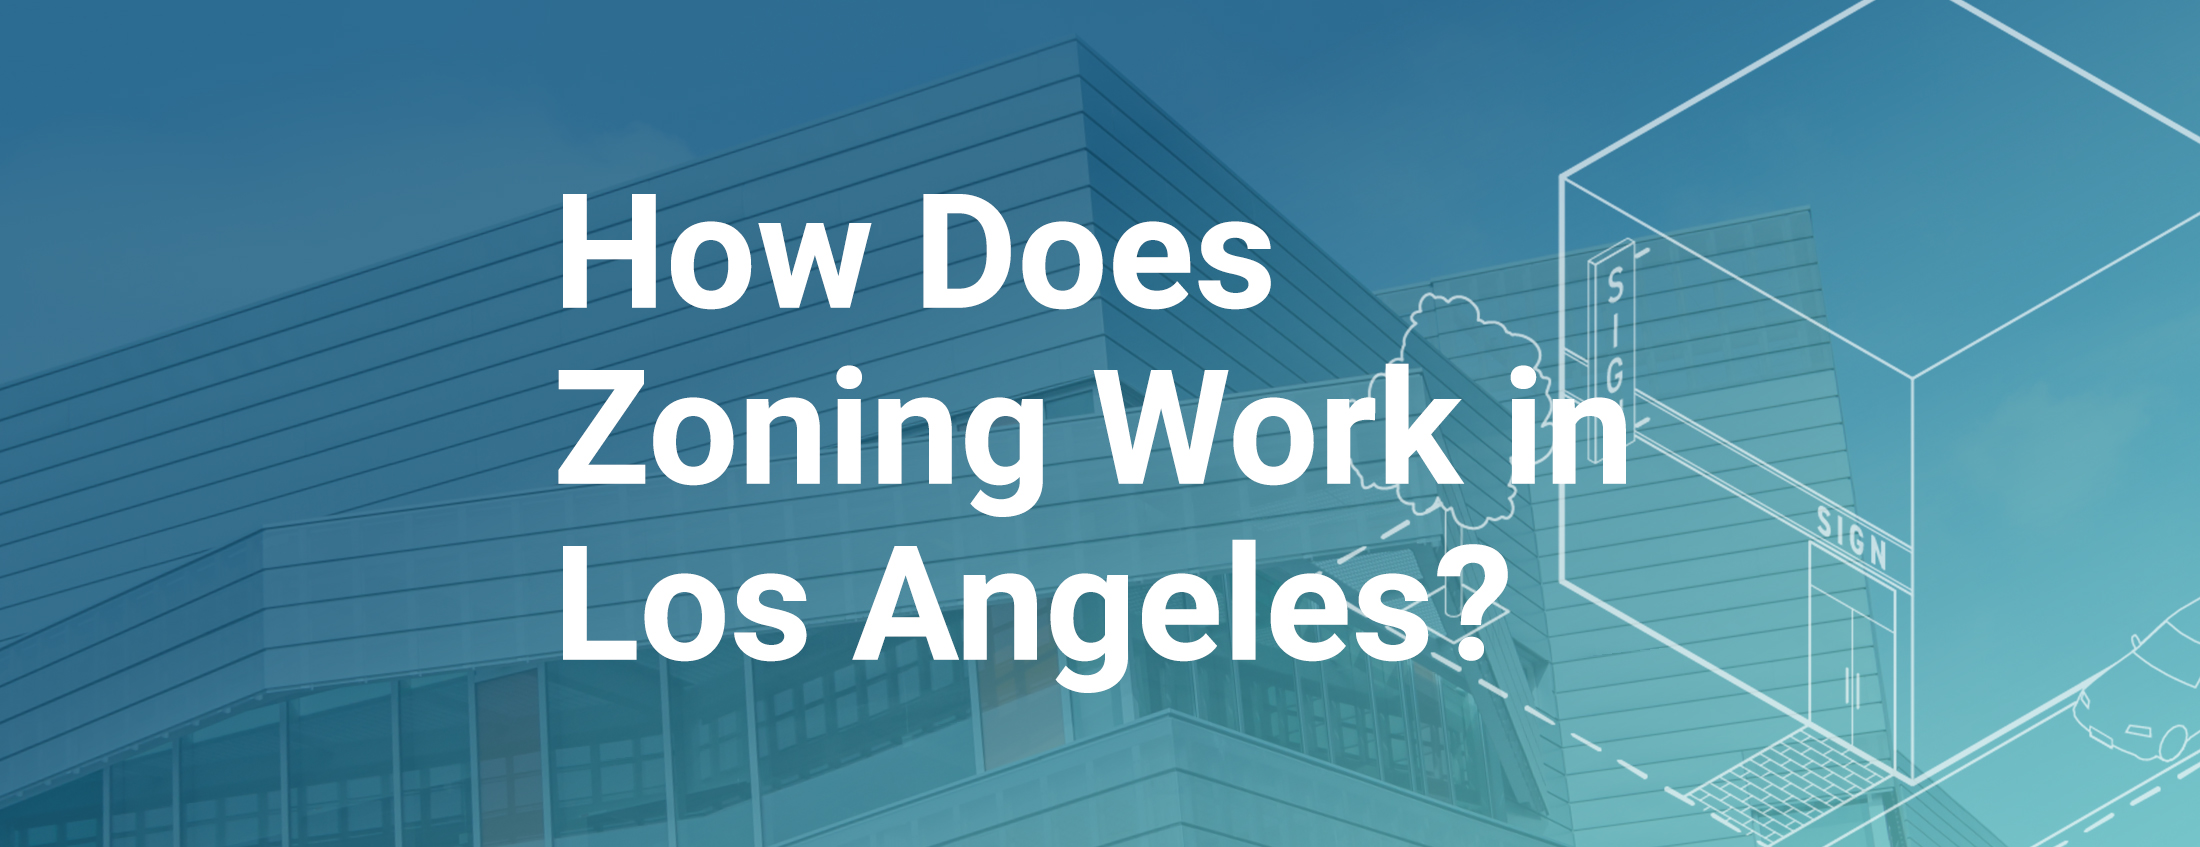 Zoning in Los Angeles